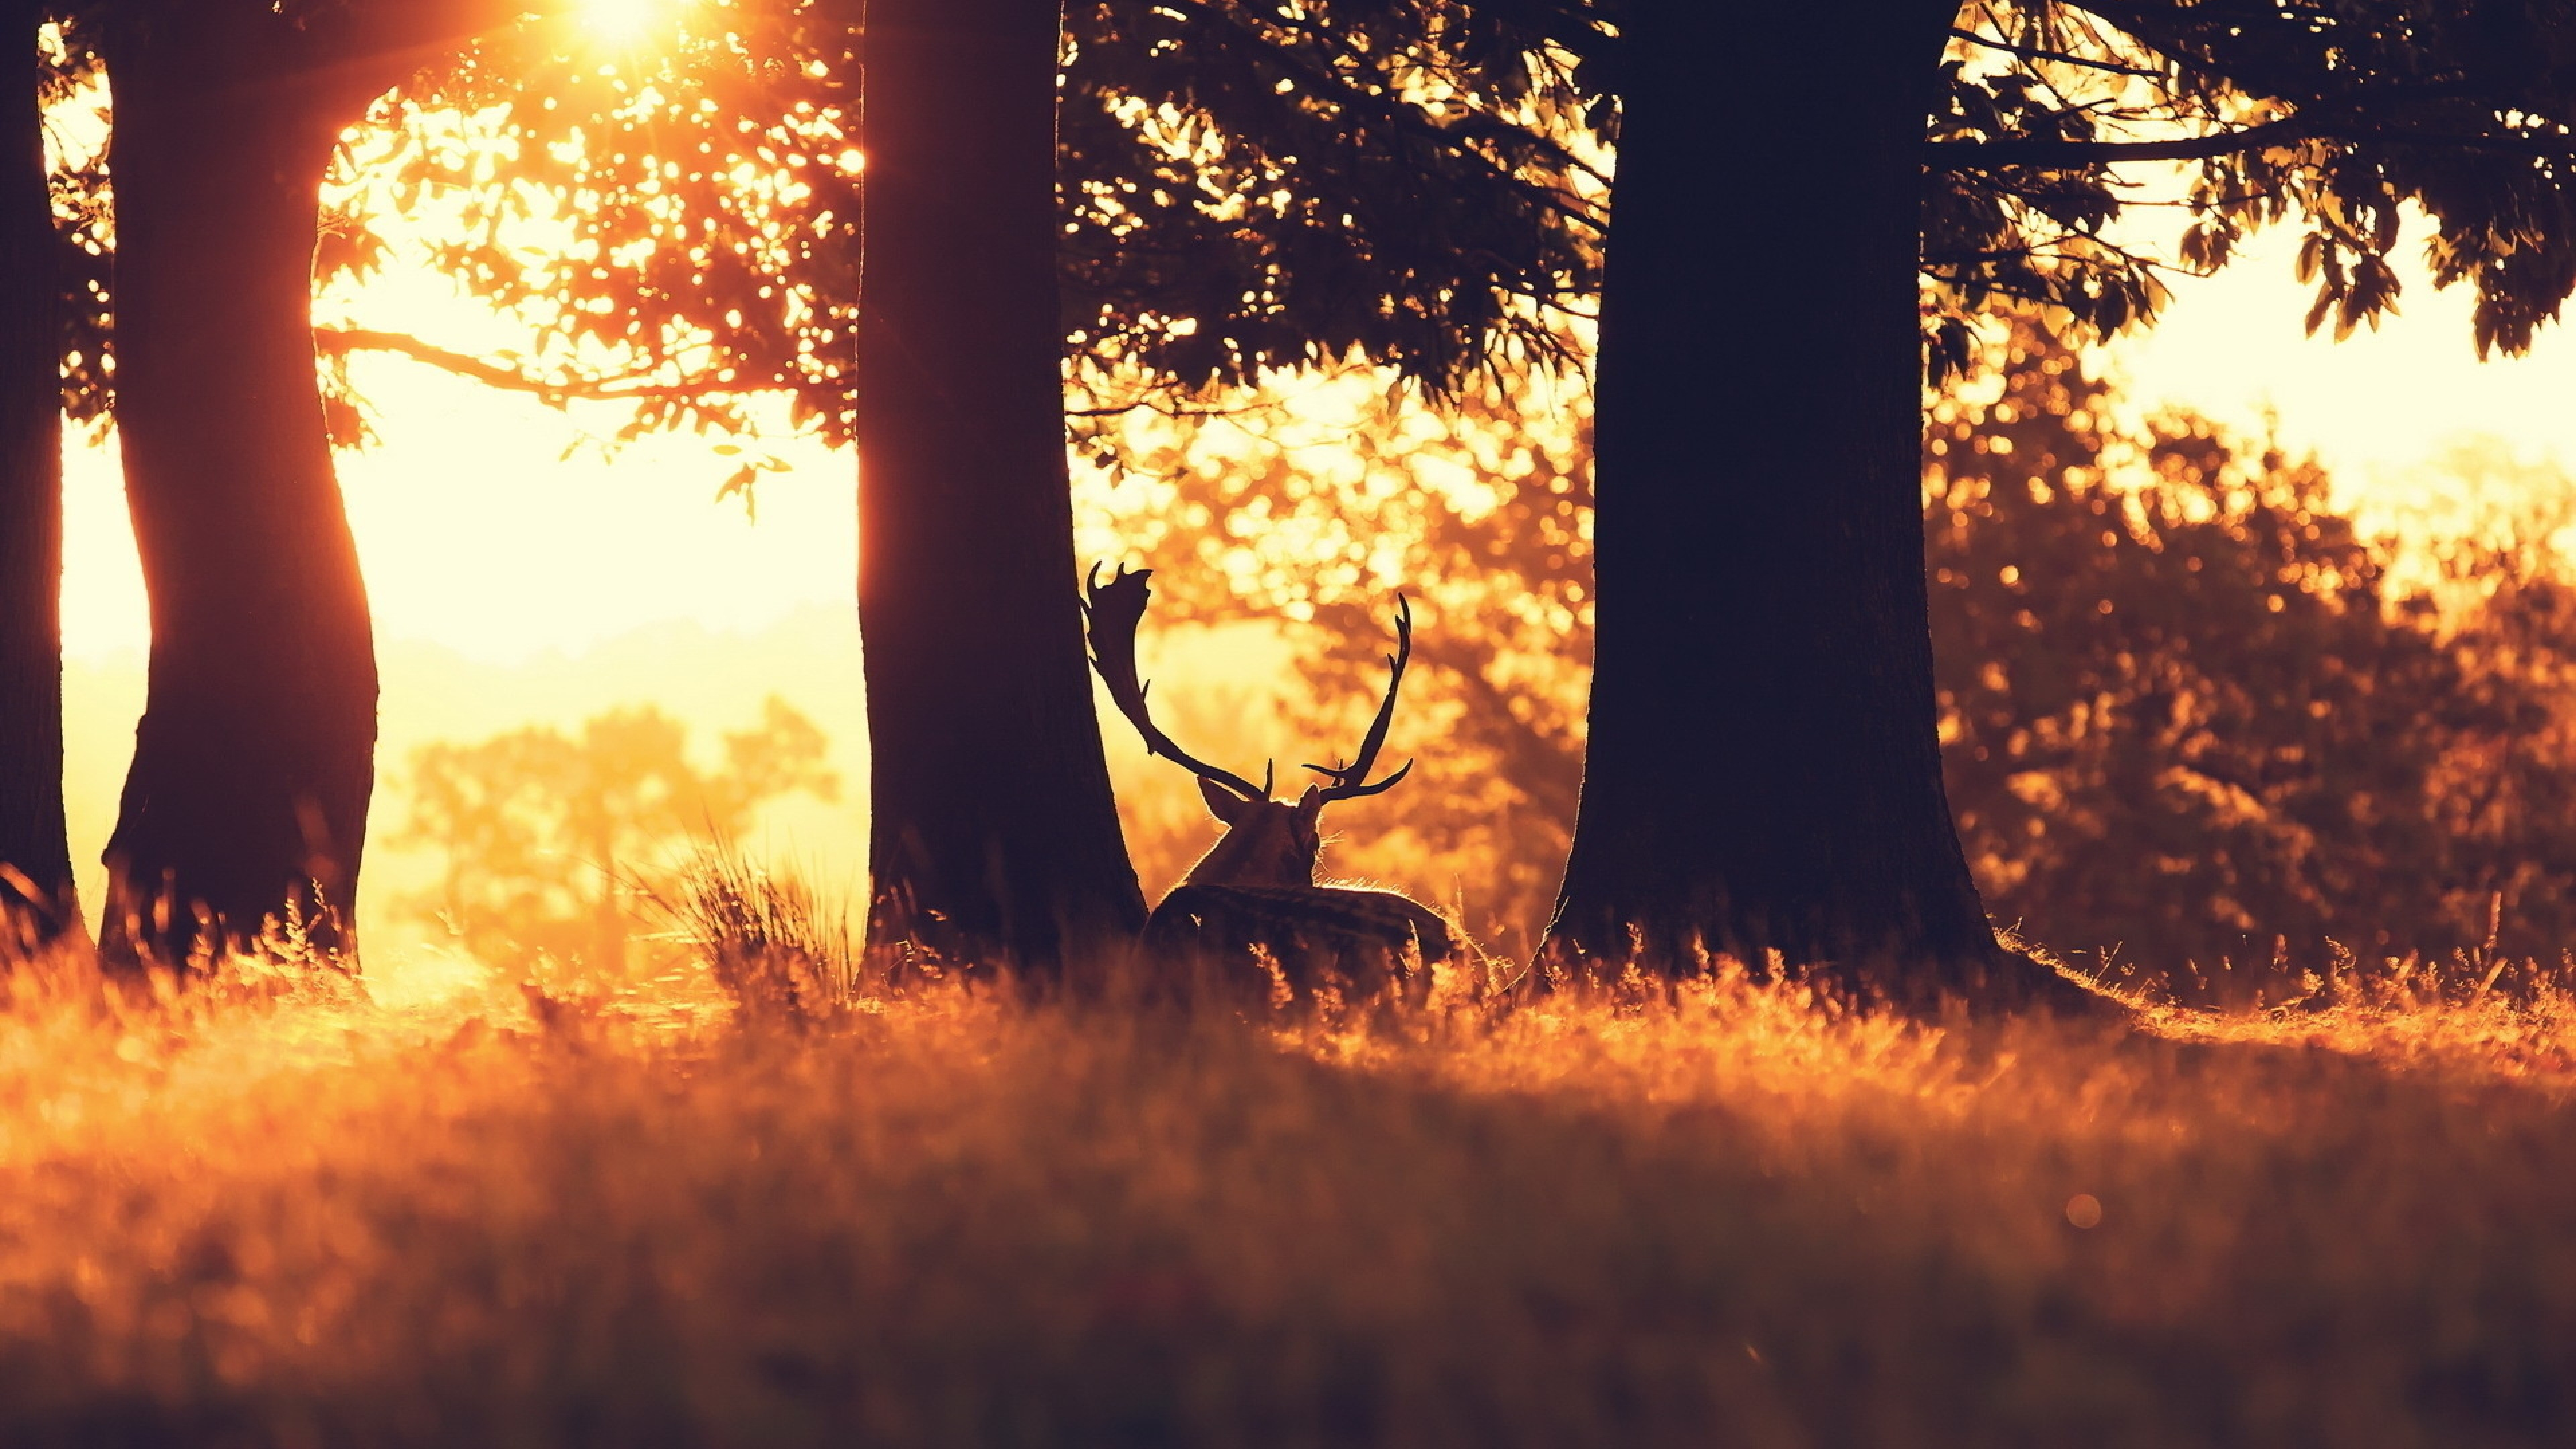 4k Wallpaper: 4K Deer Wallpapers High Quality